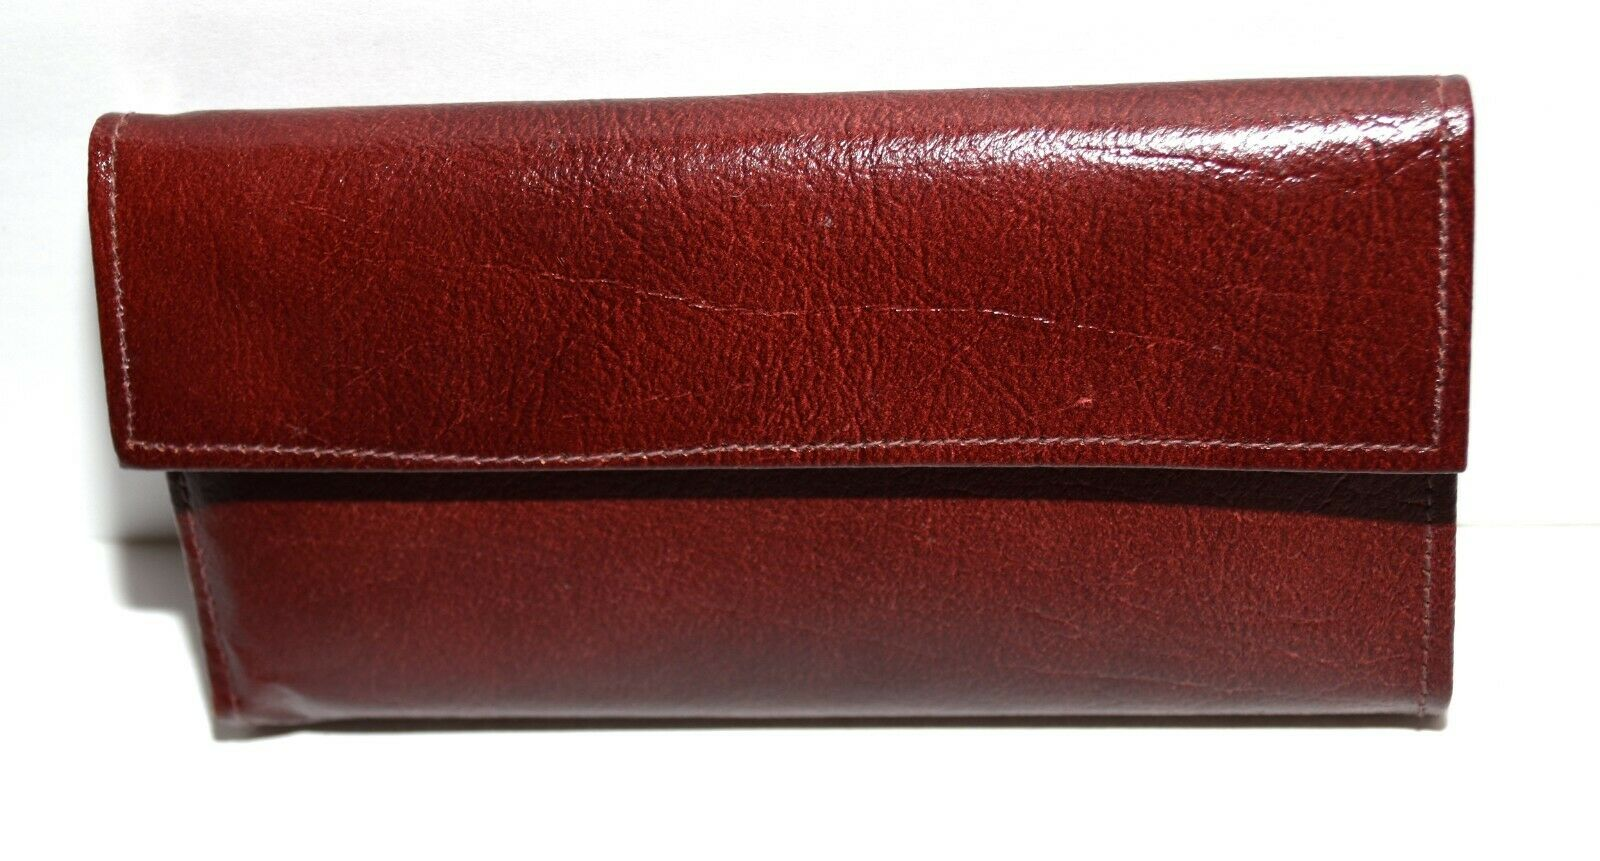 Burgundy Leather with Attached Kisslock Coin Purse Organizer Checkbook Wallet